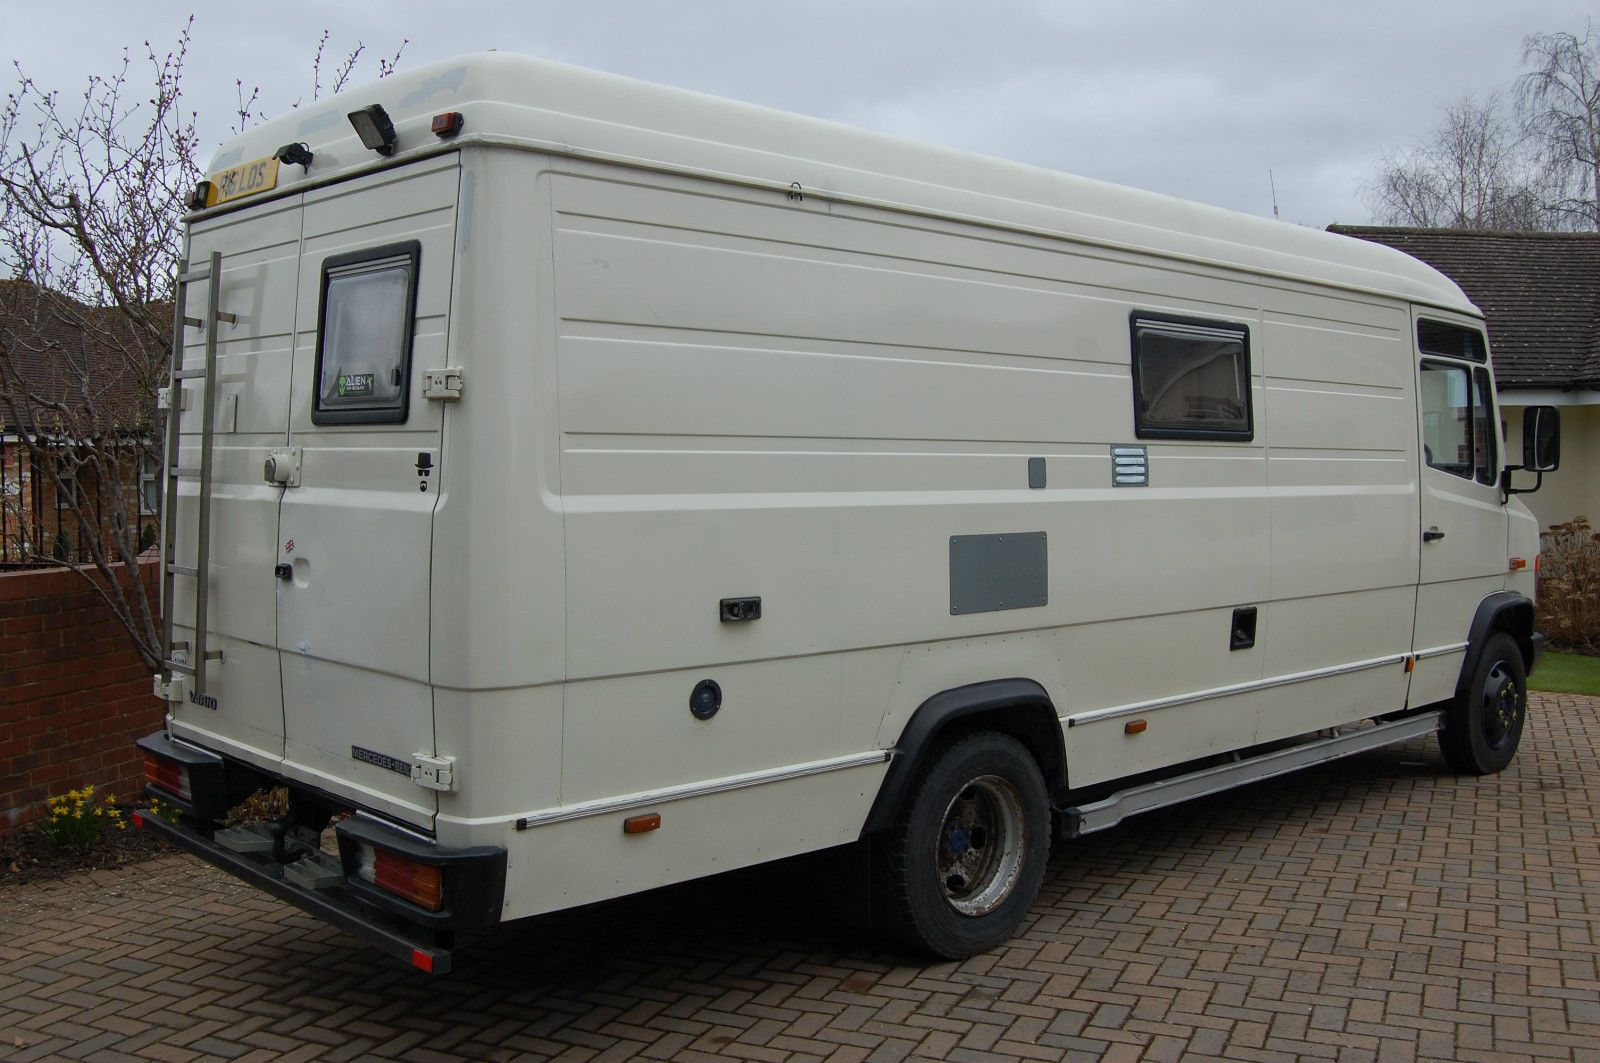 a9135ad8b2 Mercedes Benz Vario 814D LWB Expedition Overland Camper Van Motorhome Race  Truck in Cars